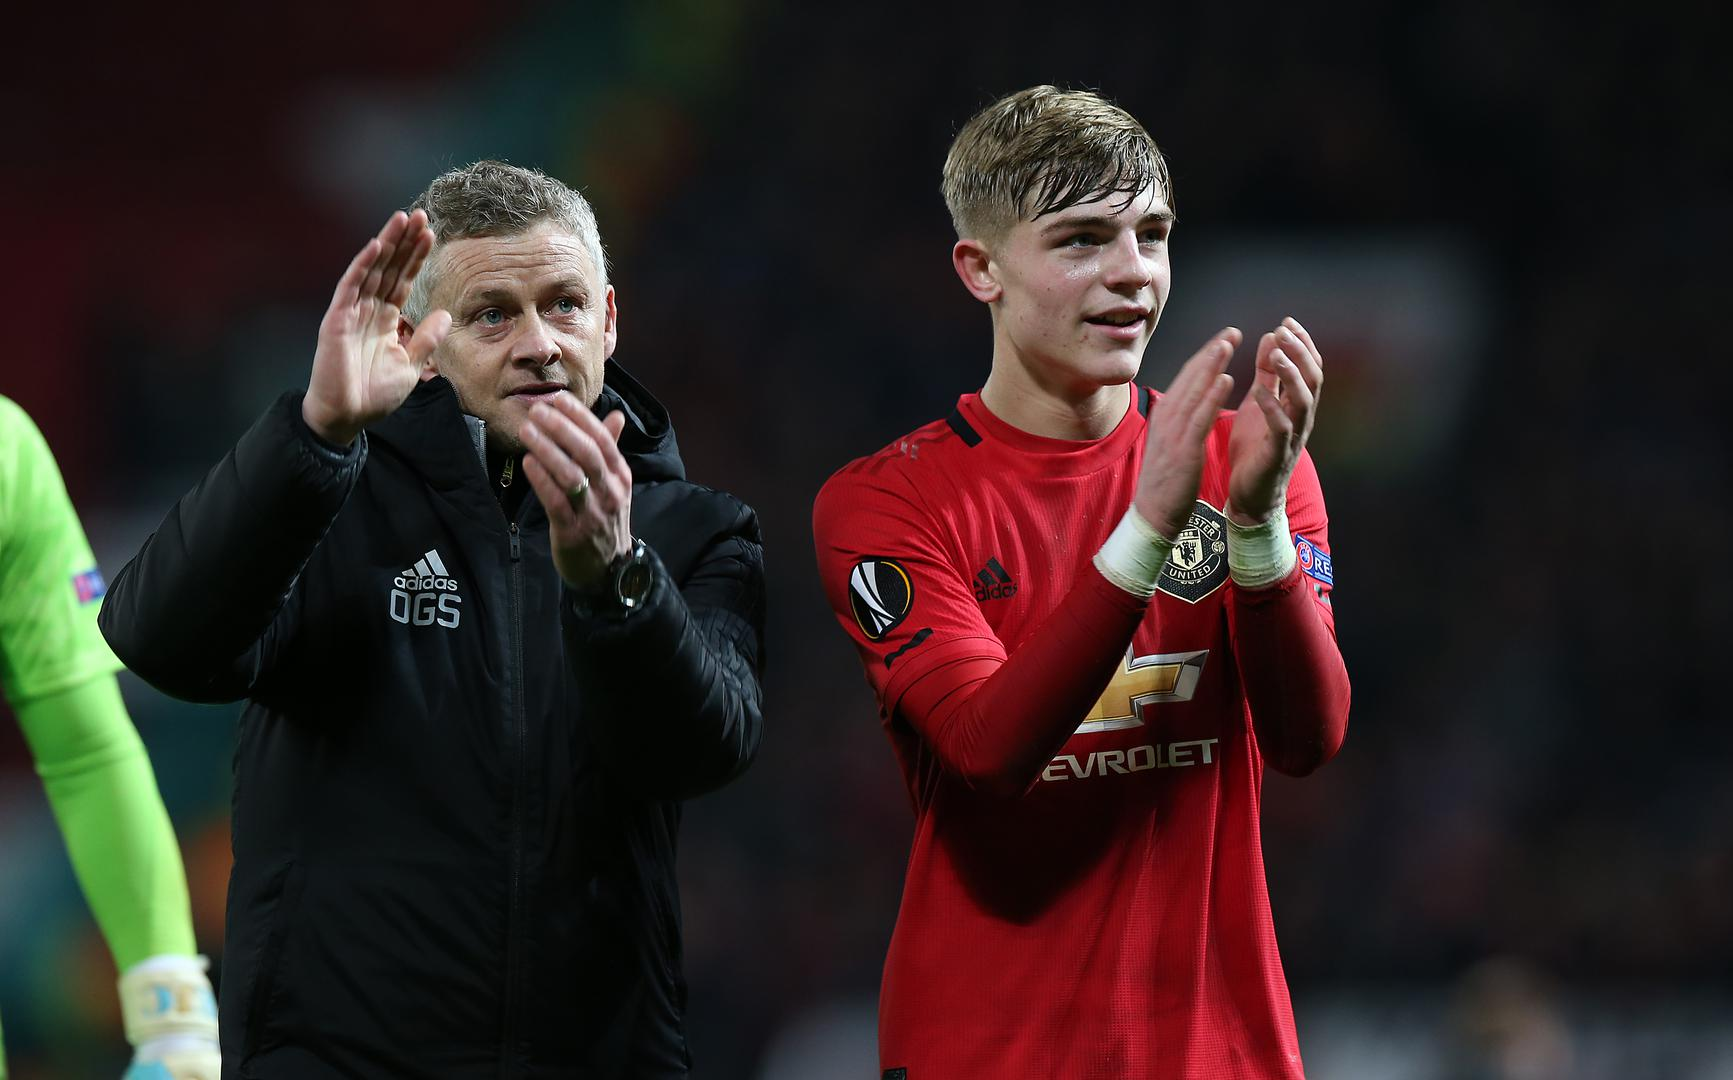 Ole Gunnar Solskjaer and Brandon Williams applaud supporters after United beat Alkmaar 4-0.,